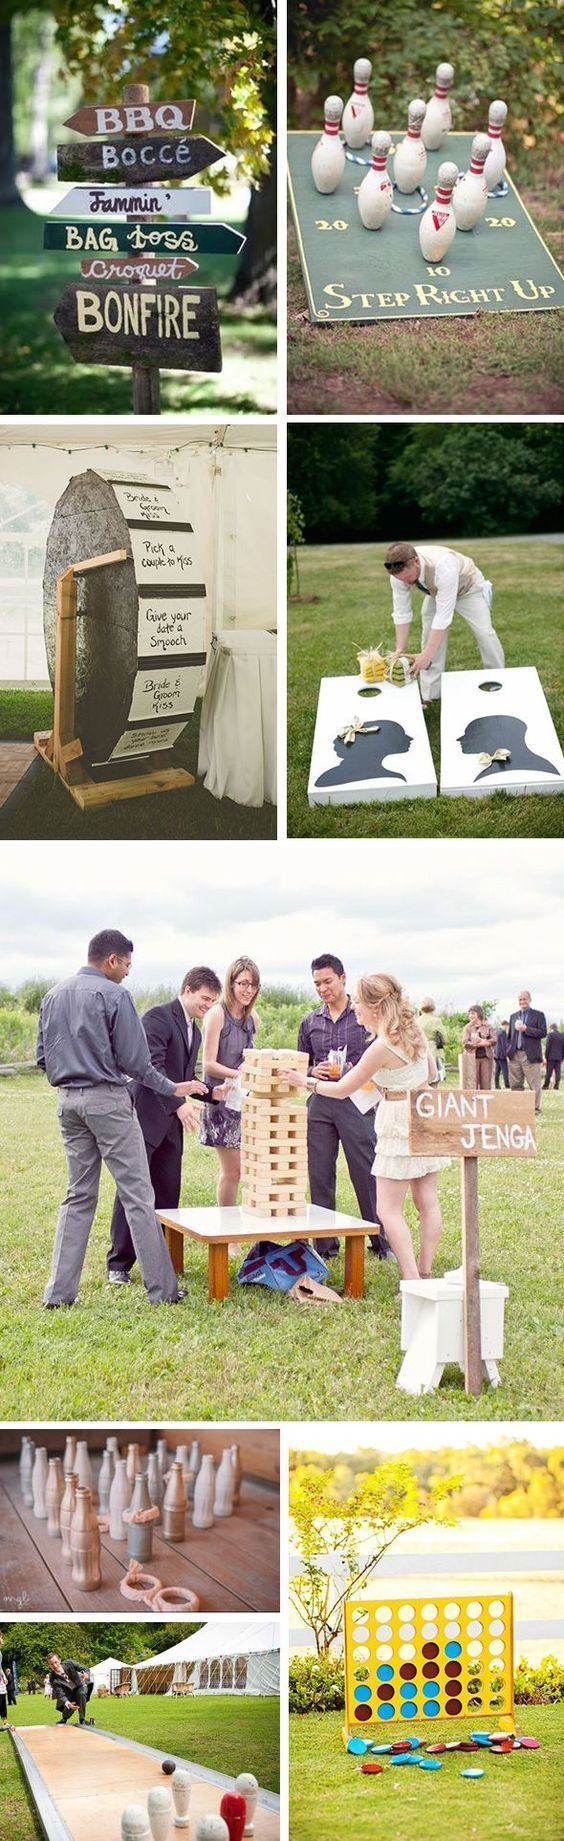 Best 25+ Giant outdoor games ideas on Pinterest | Giant games ...